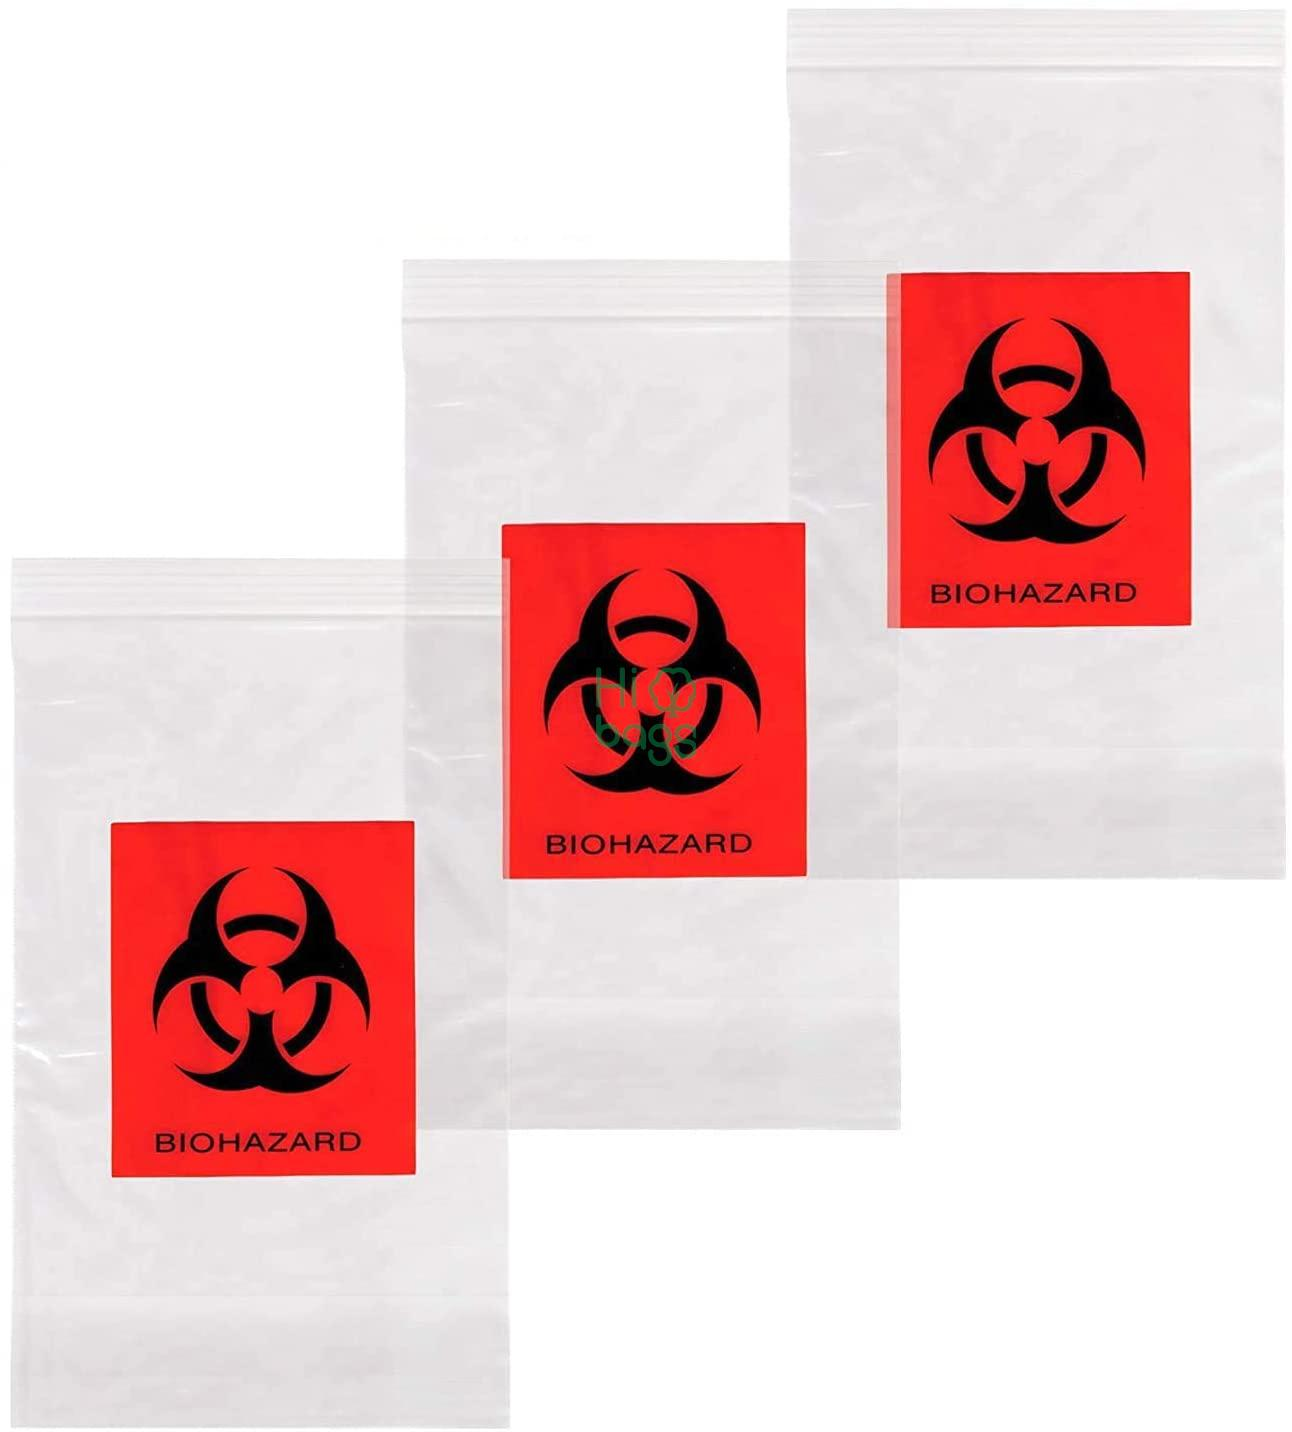 Biohazard Specimen Bags, Black and Red  Zip Lock Top Plastic Pouch Bags M